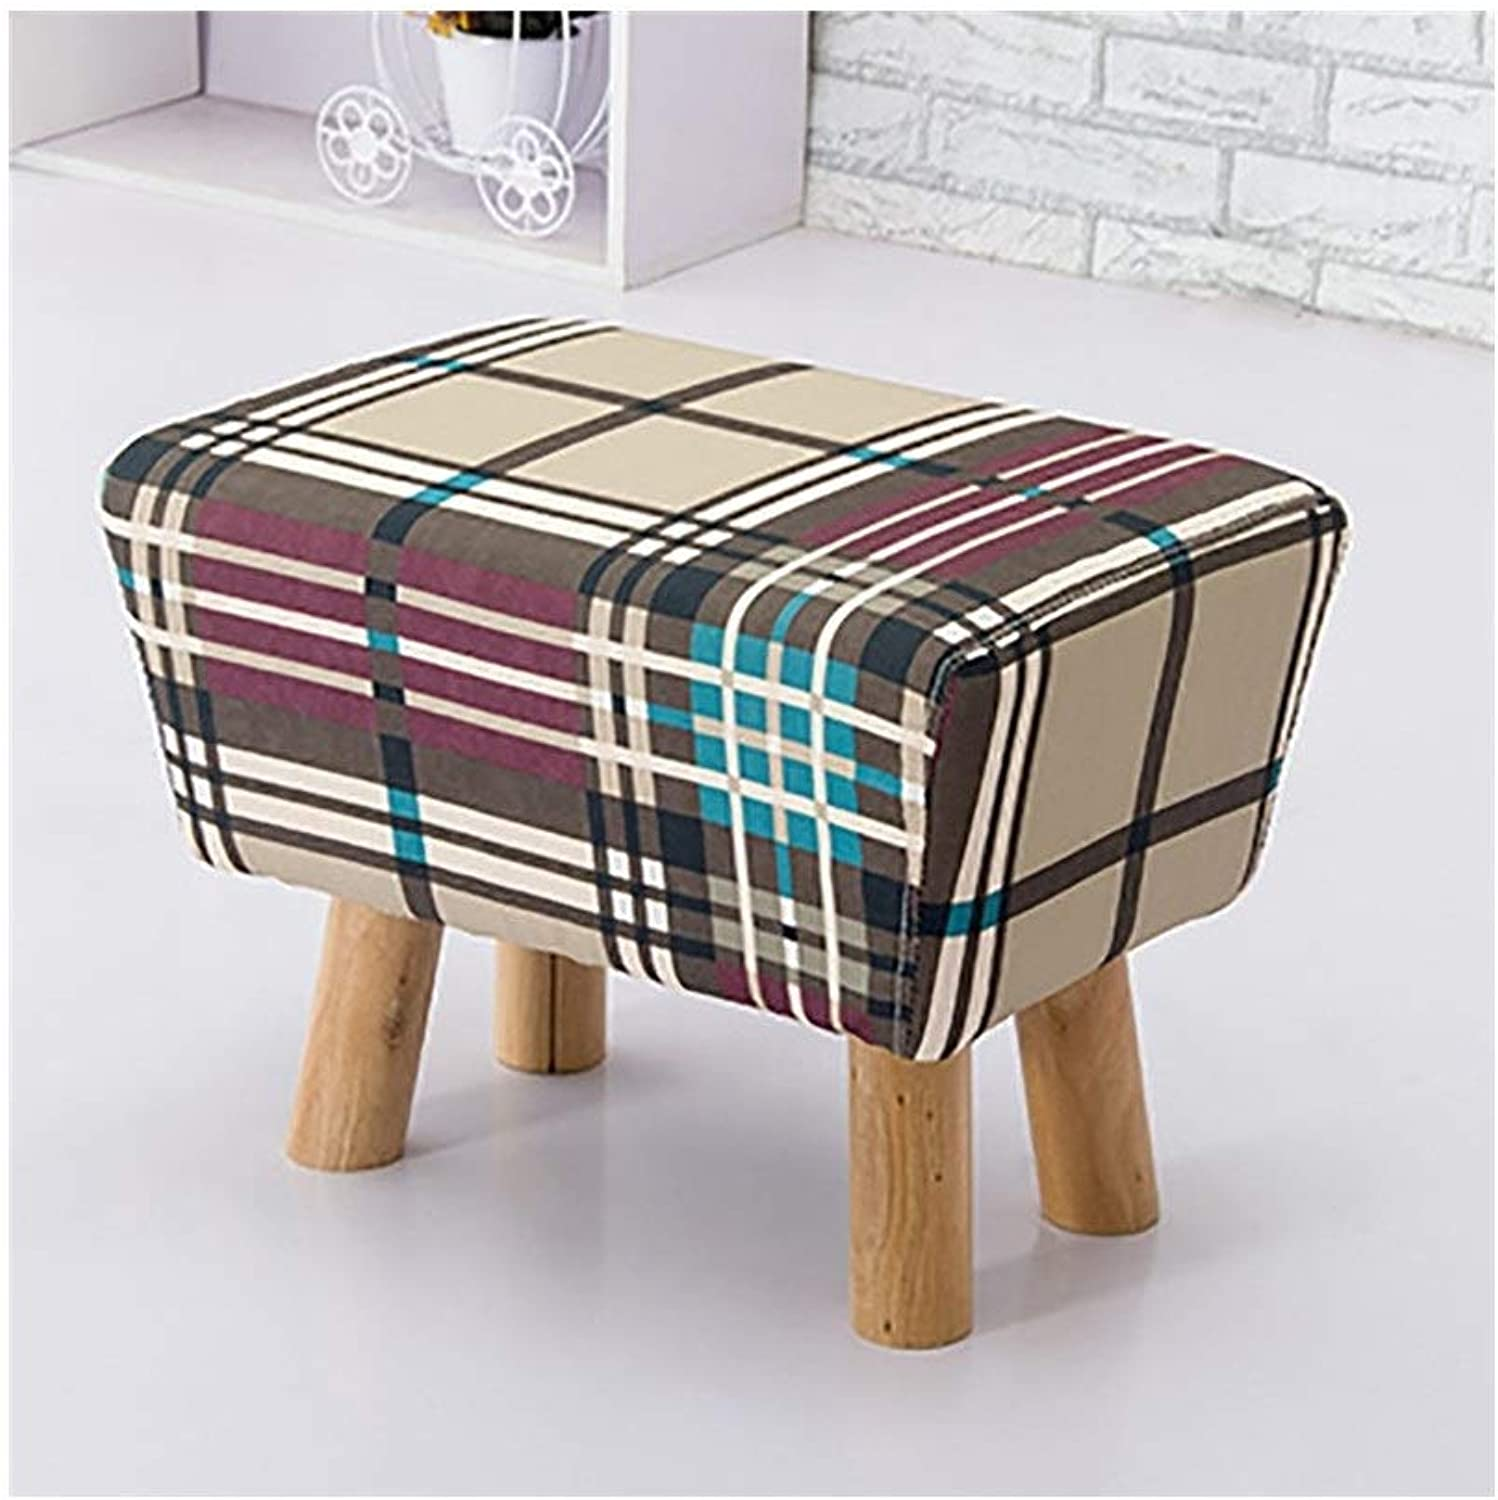 European Chair Creative Stool, Low Stool Fitting Room, shoes Bench, Small Round Stool, Coffee Table Stool, Fabric Stool (Size   52  35  39cm)